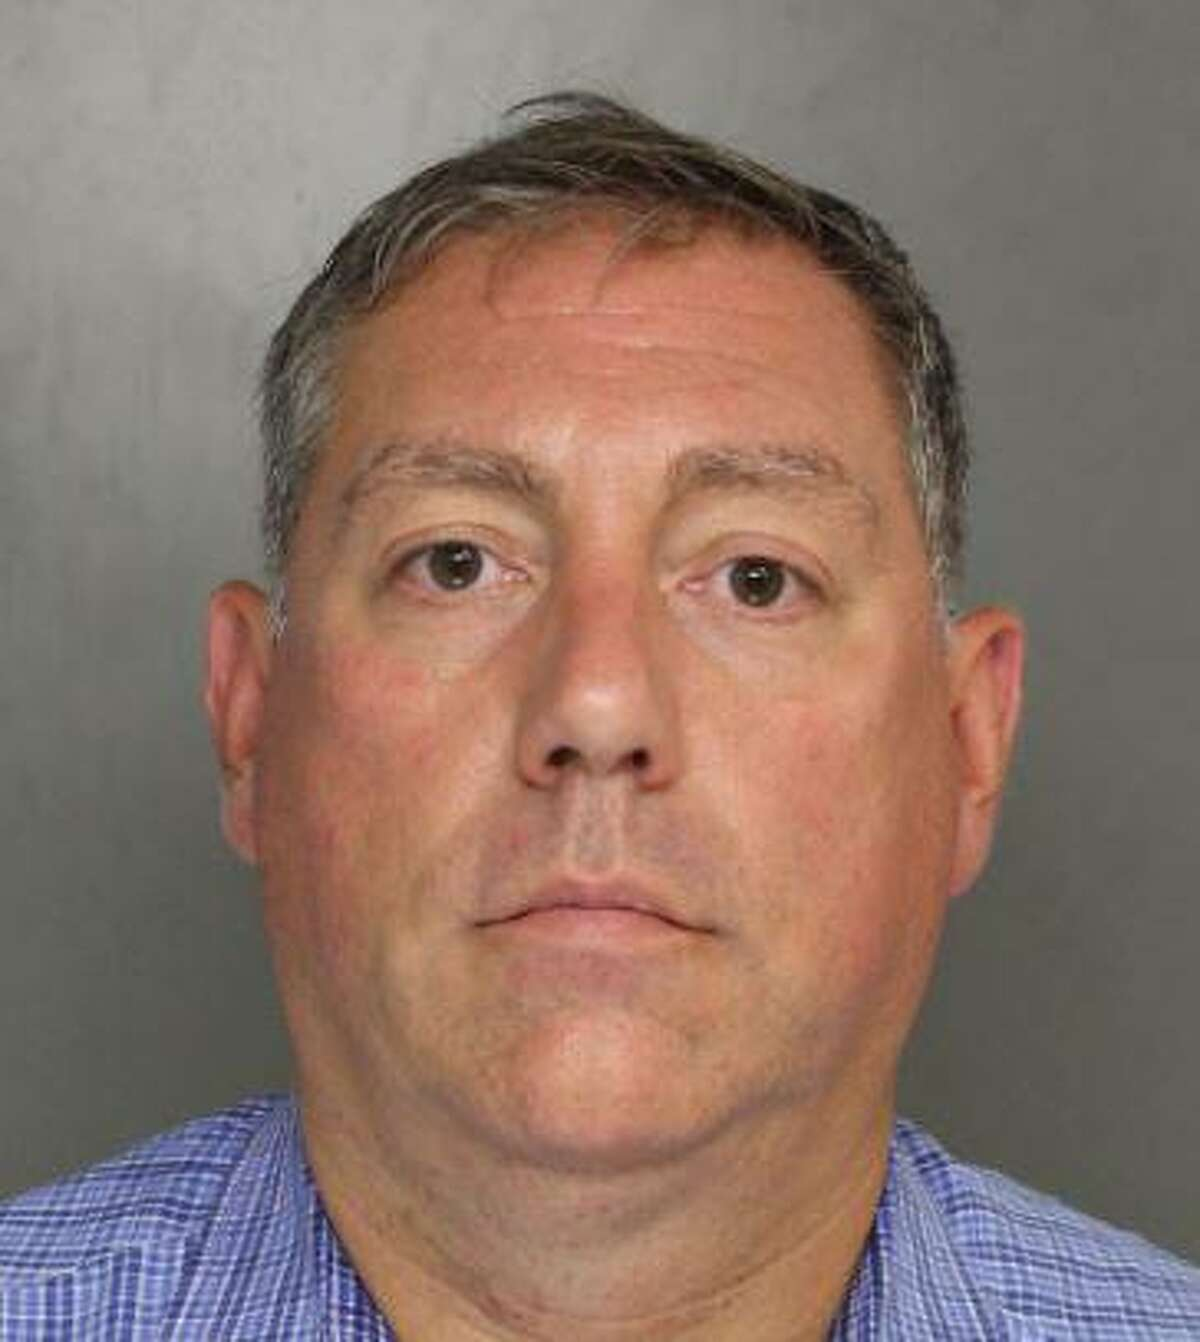 In 2018, Scott Marinelli was charged with numerous crimes in connection with several real estate transactions in Monroe County, Pennsylvania. He ended up spending four months in jail.